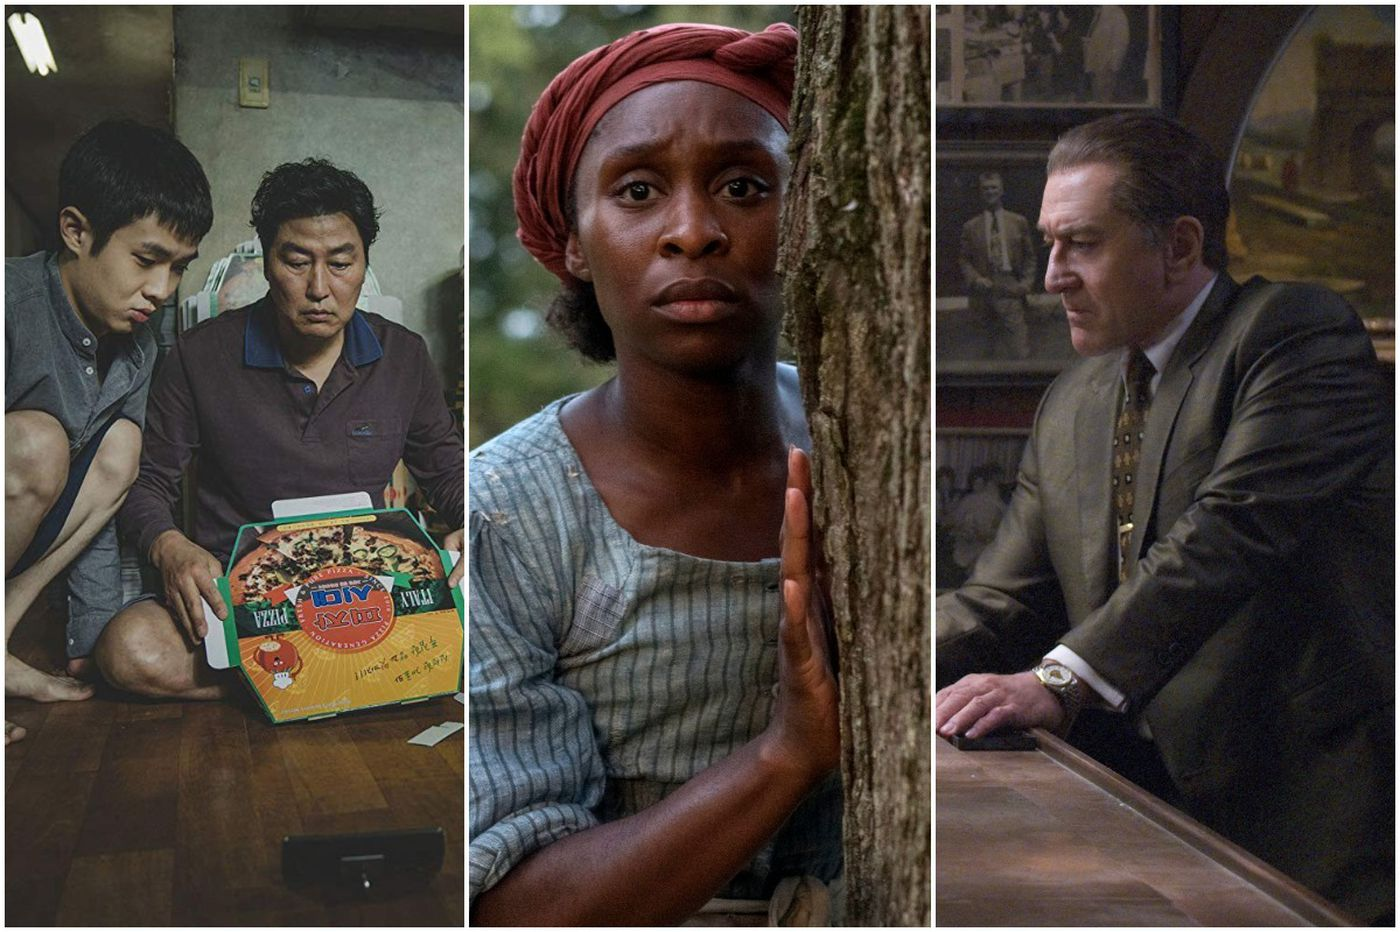 Philadelphia Film Festival 2019: What you should be seeing this year, from 'The Irishman' to 'Harriet'